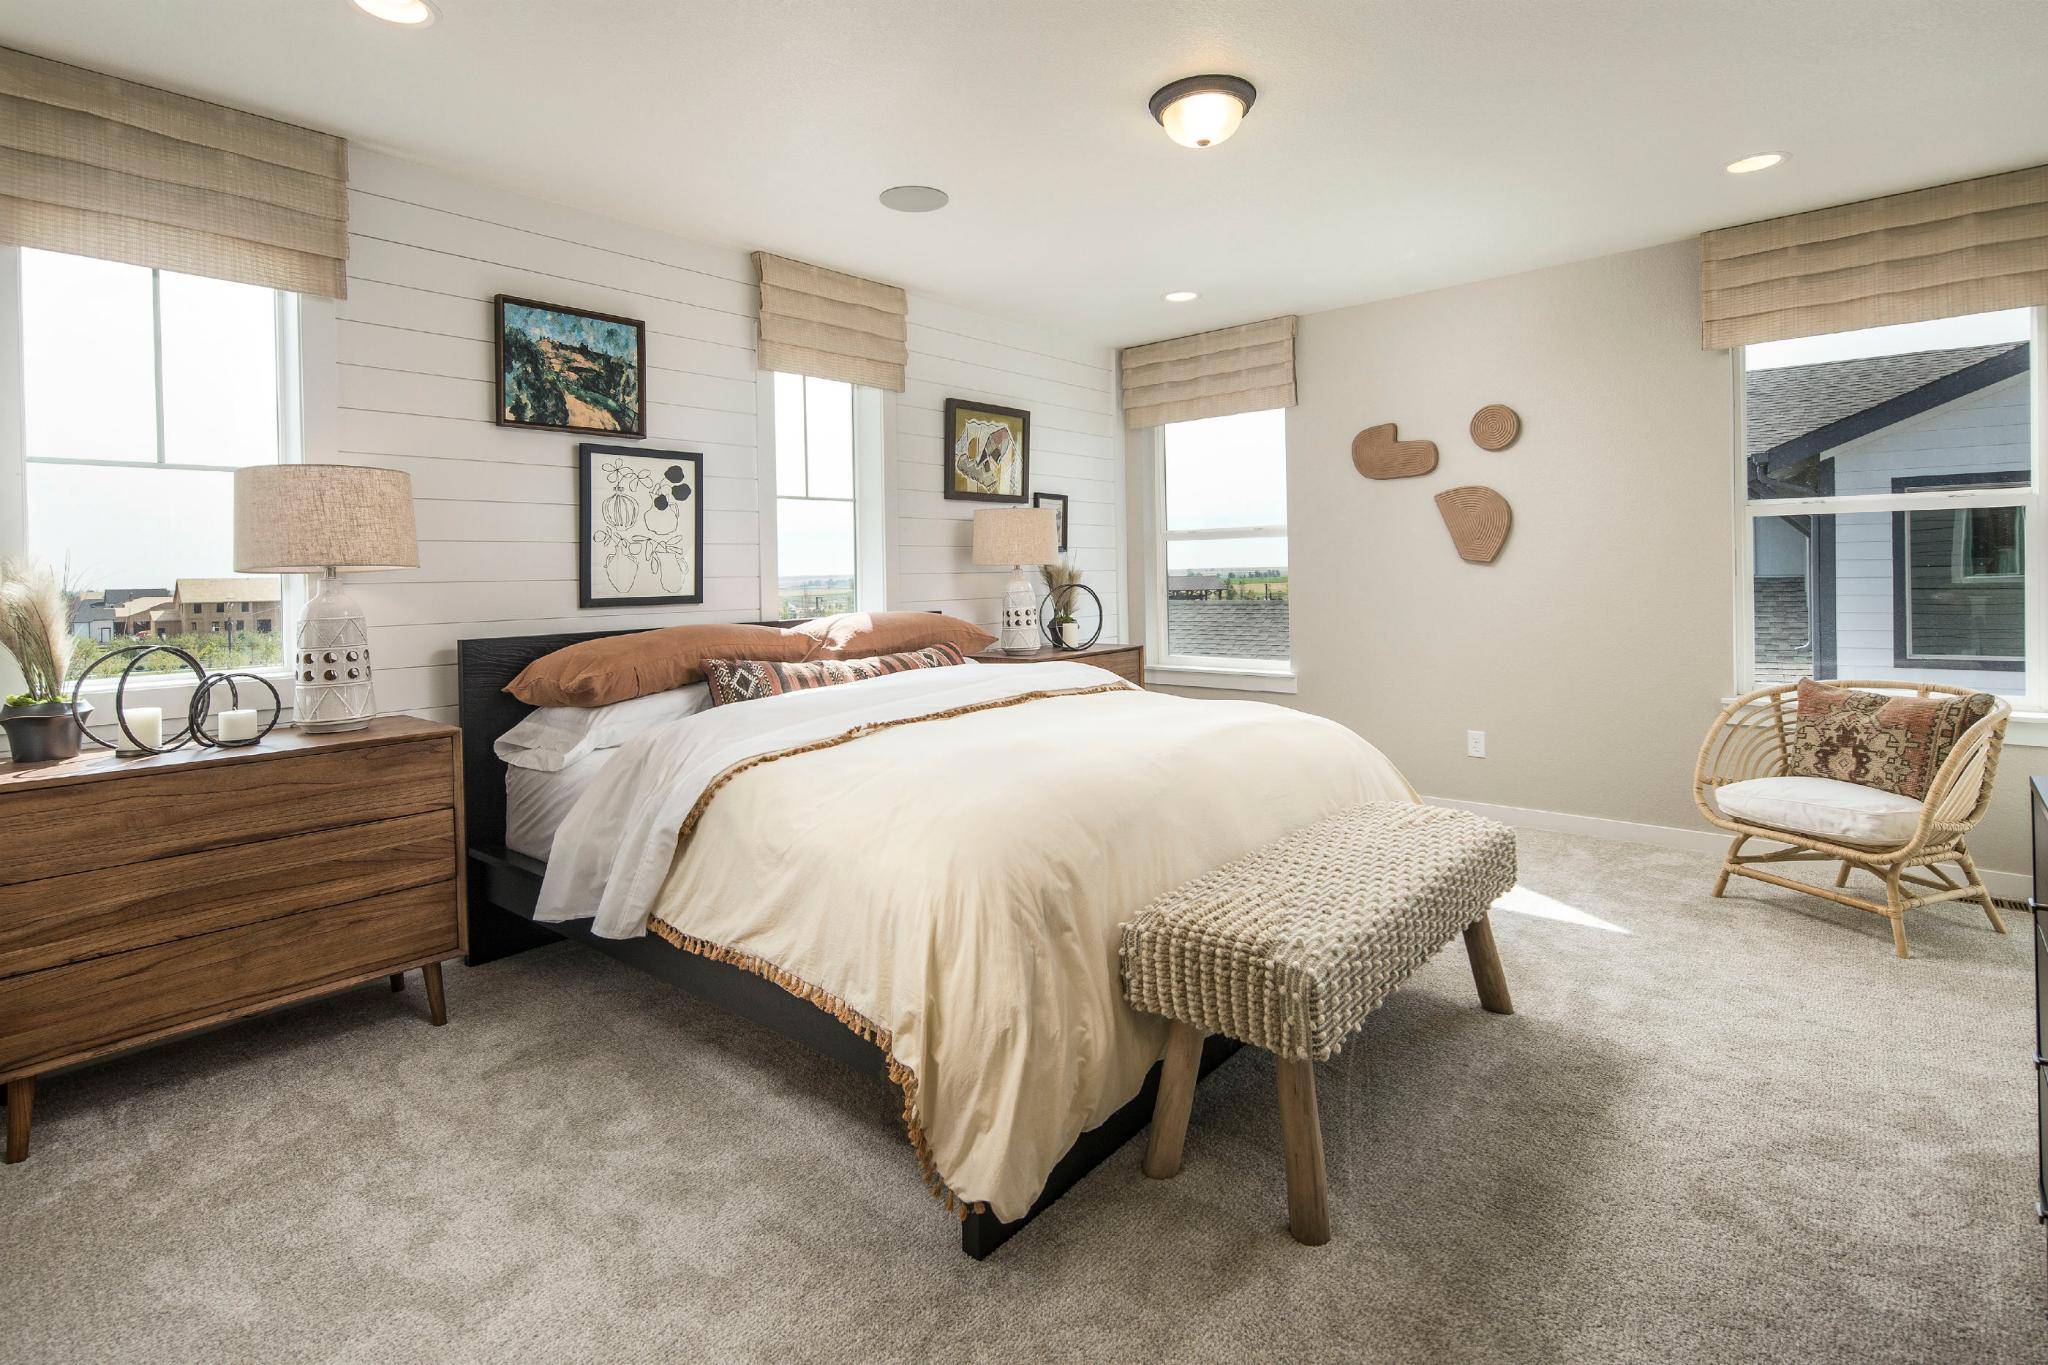 Bedroom featured in the Plan V421 By American Legend Homes in Fort Collins-Loveland, CO